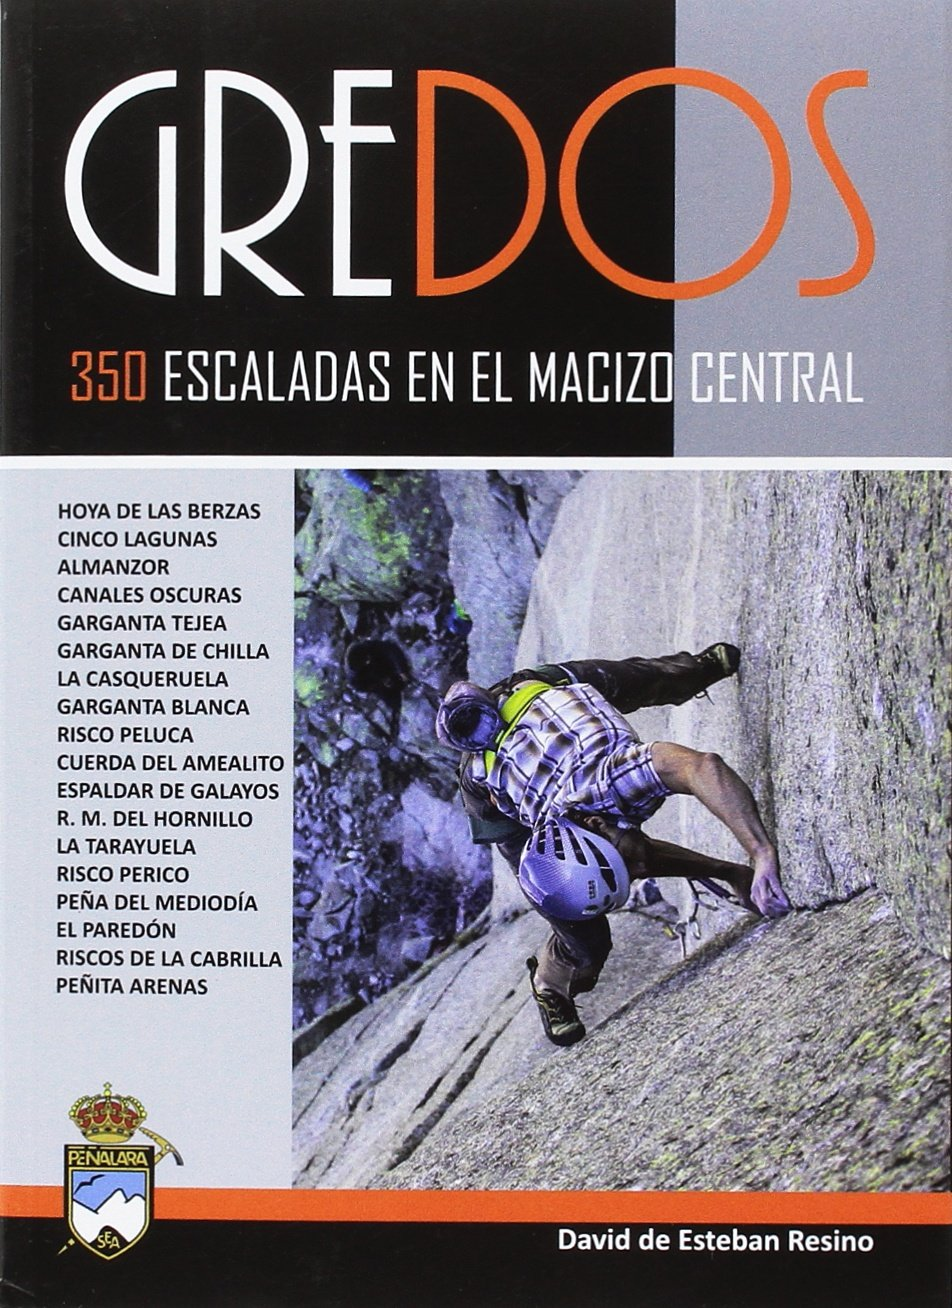 Gredos.350 escaladas en el macizo central: Amazon.es: David de Esteban Resino: Libros